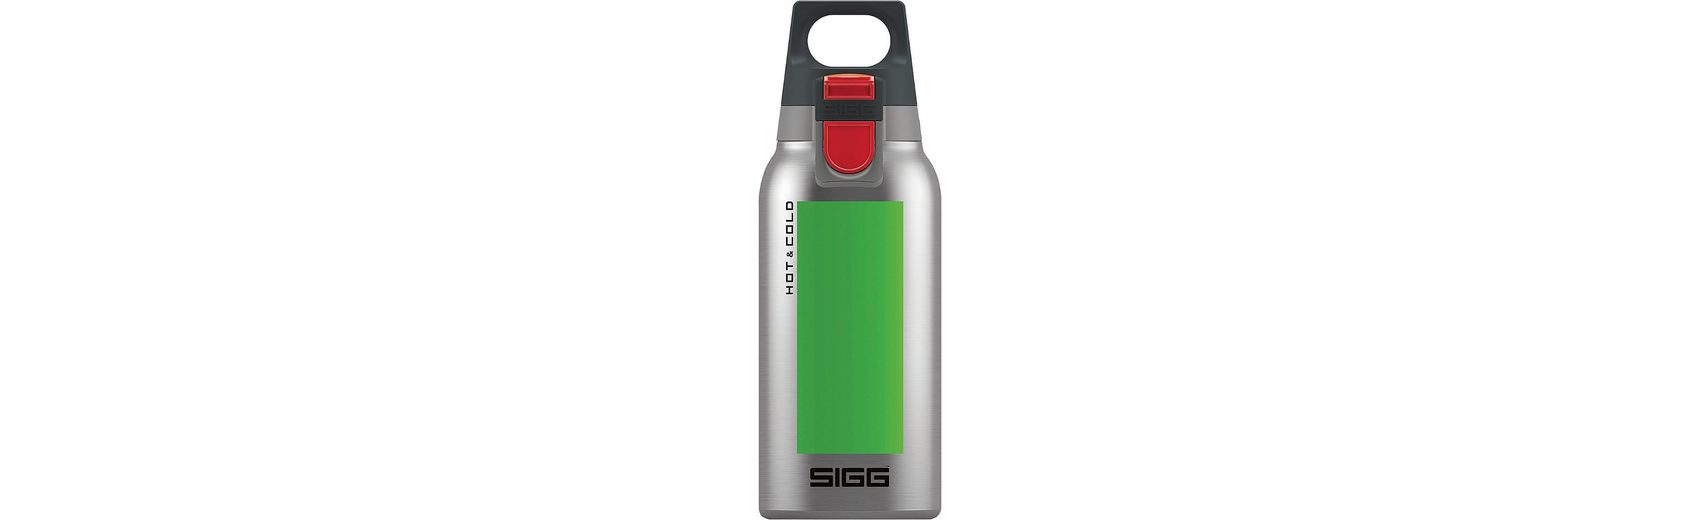 SIGG Trinkflasche Hot & Cold ONE Accent Green, 0,3 l